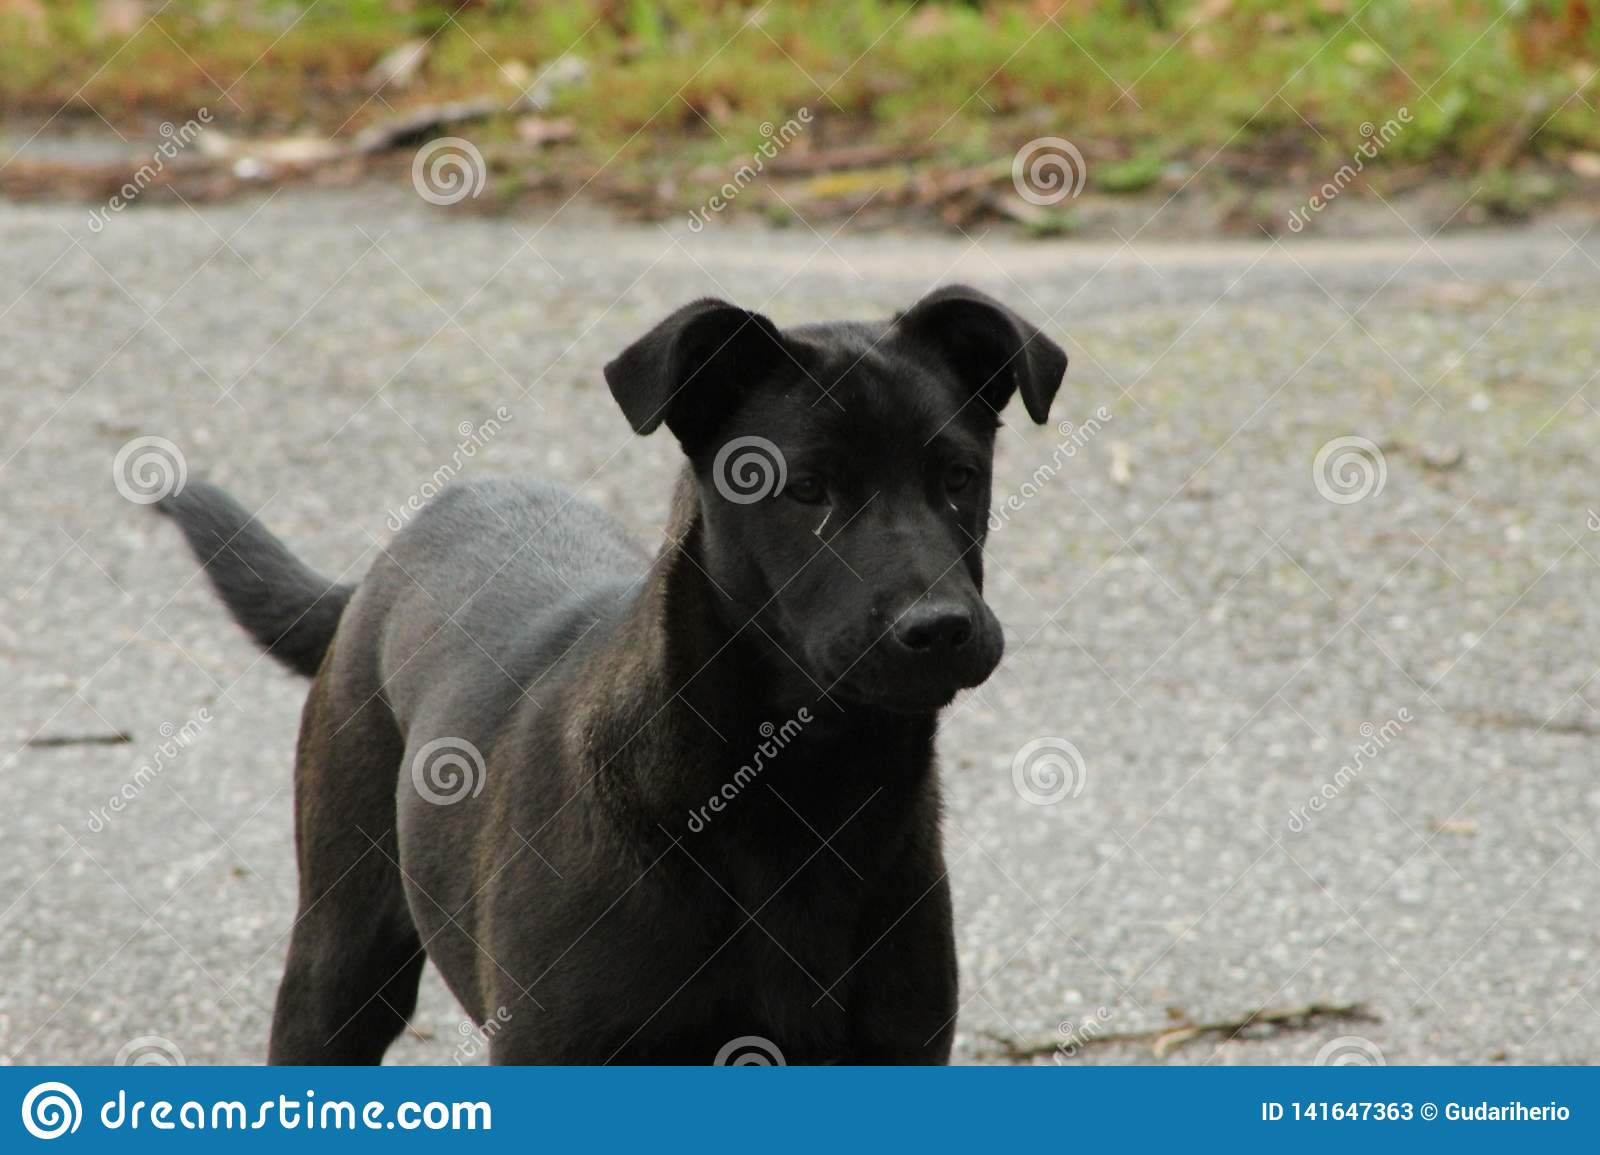 Cute black and grey dogs